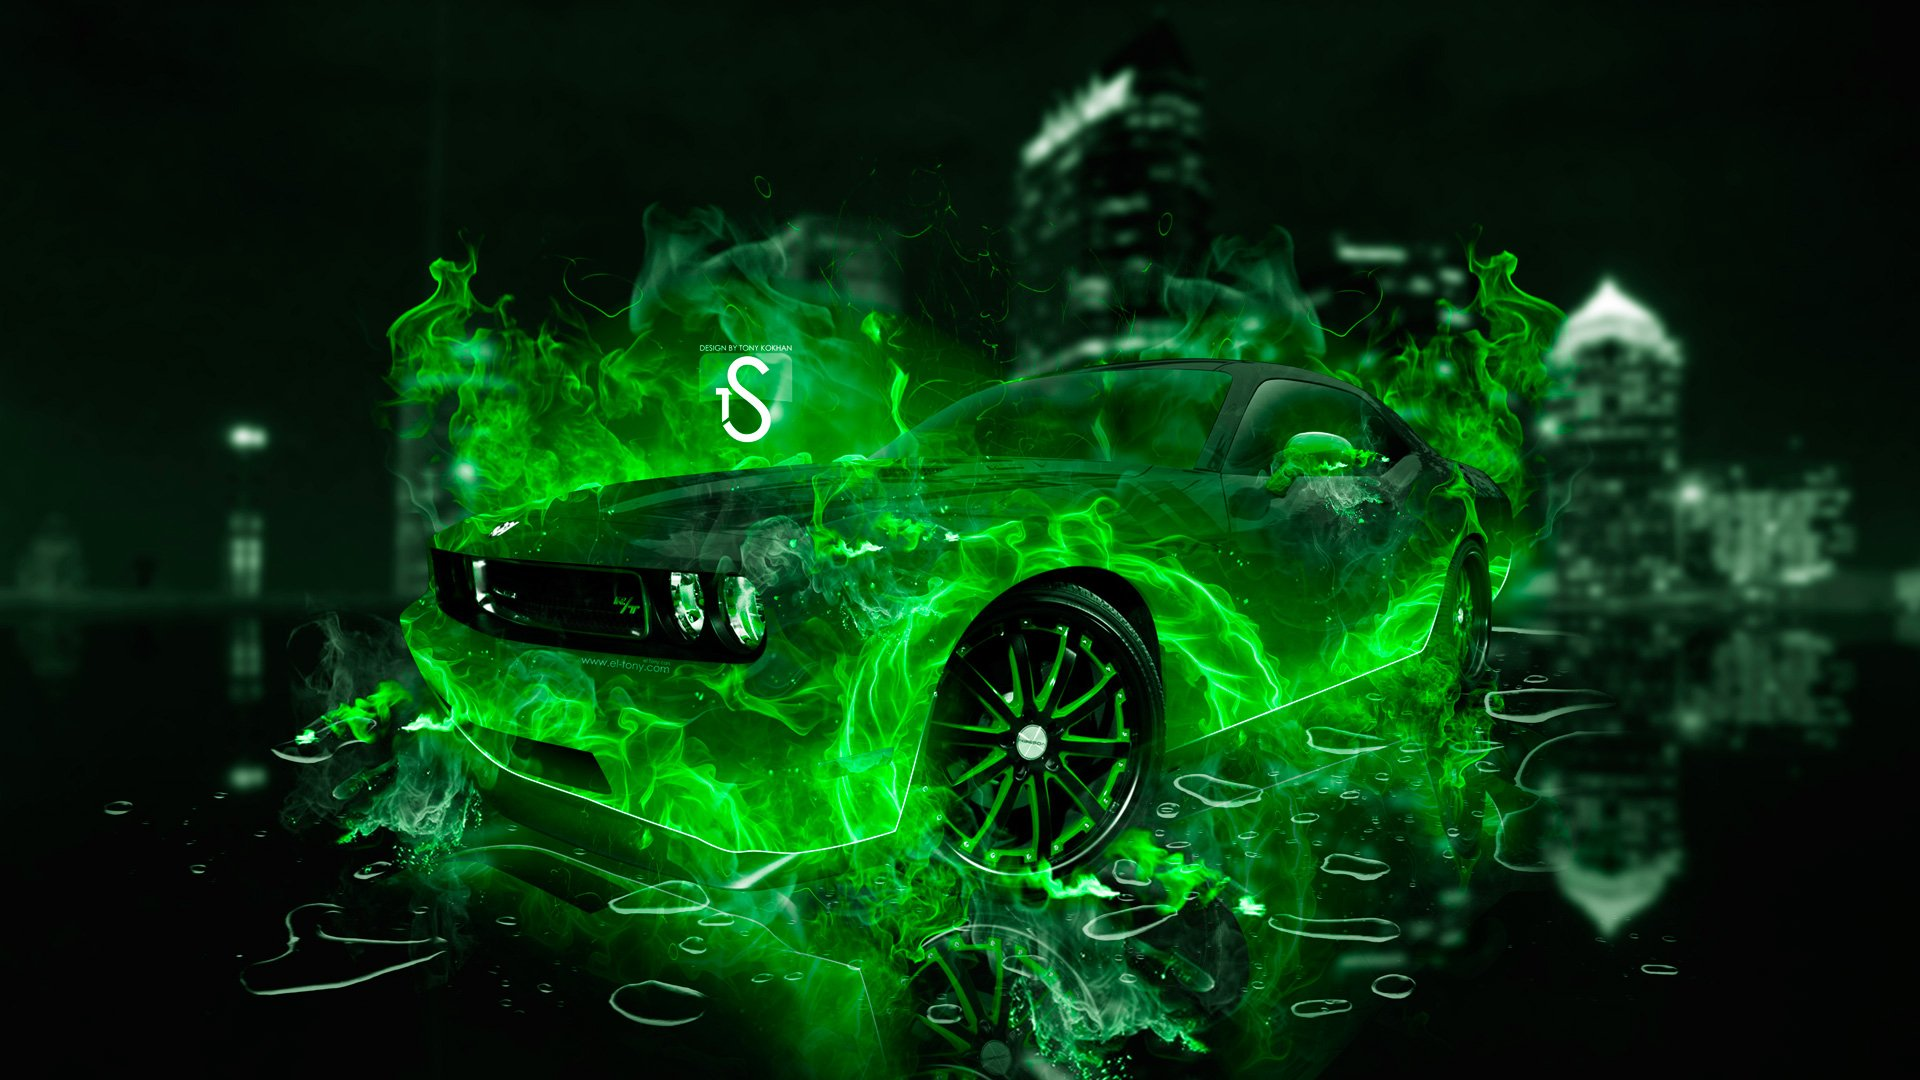 Dodge Challenger Green Fire City Car 2014 HD Wallpapers design by Tony 1920x1080